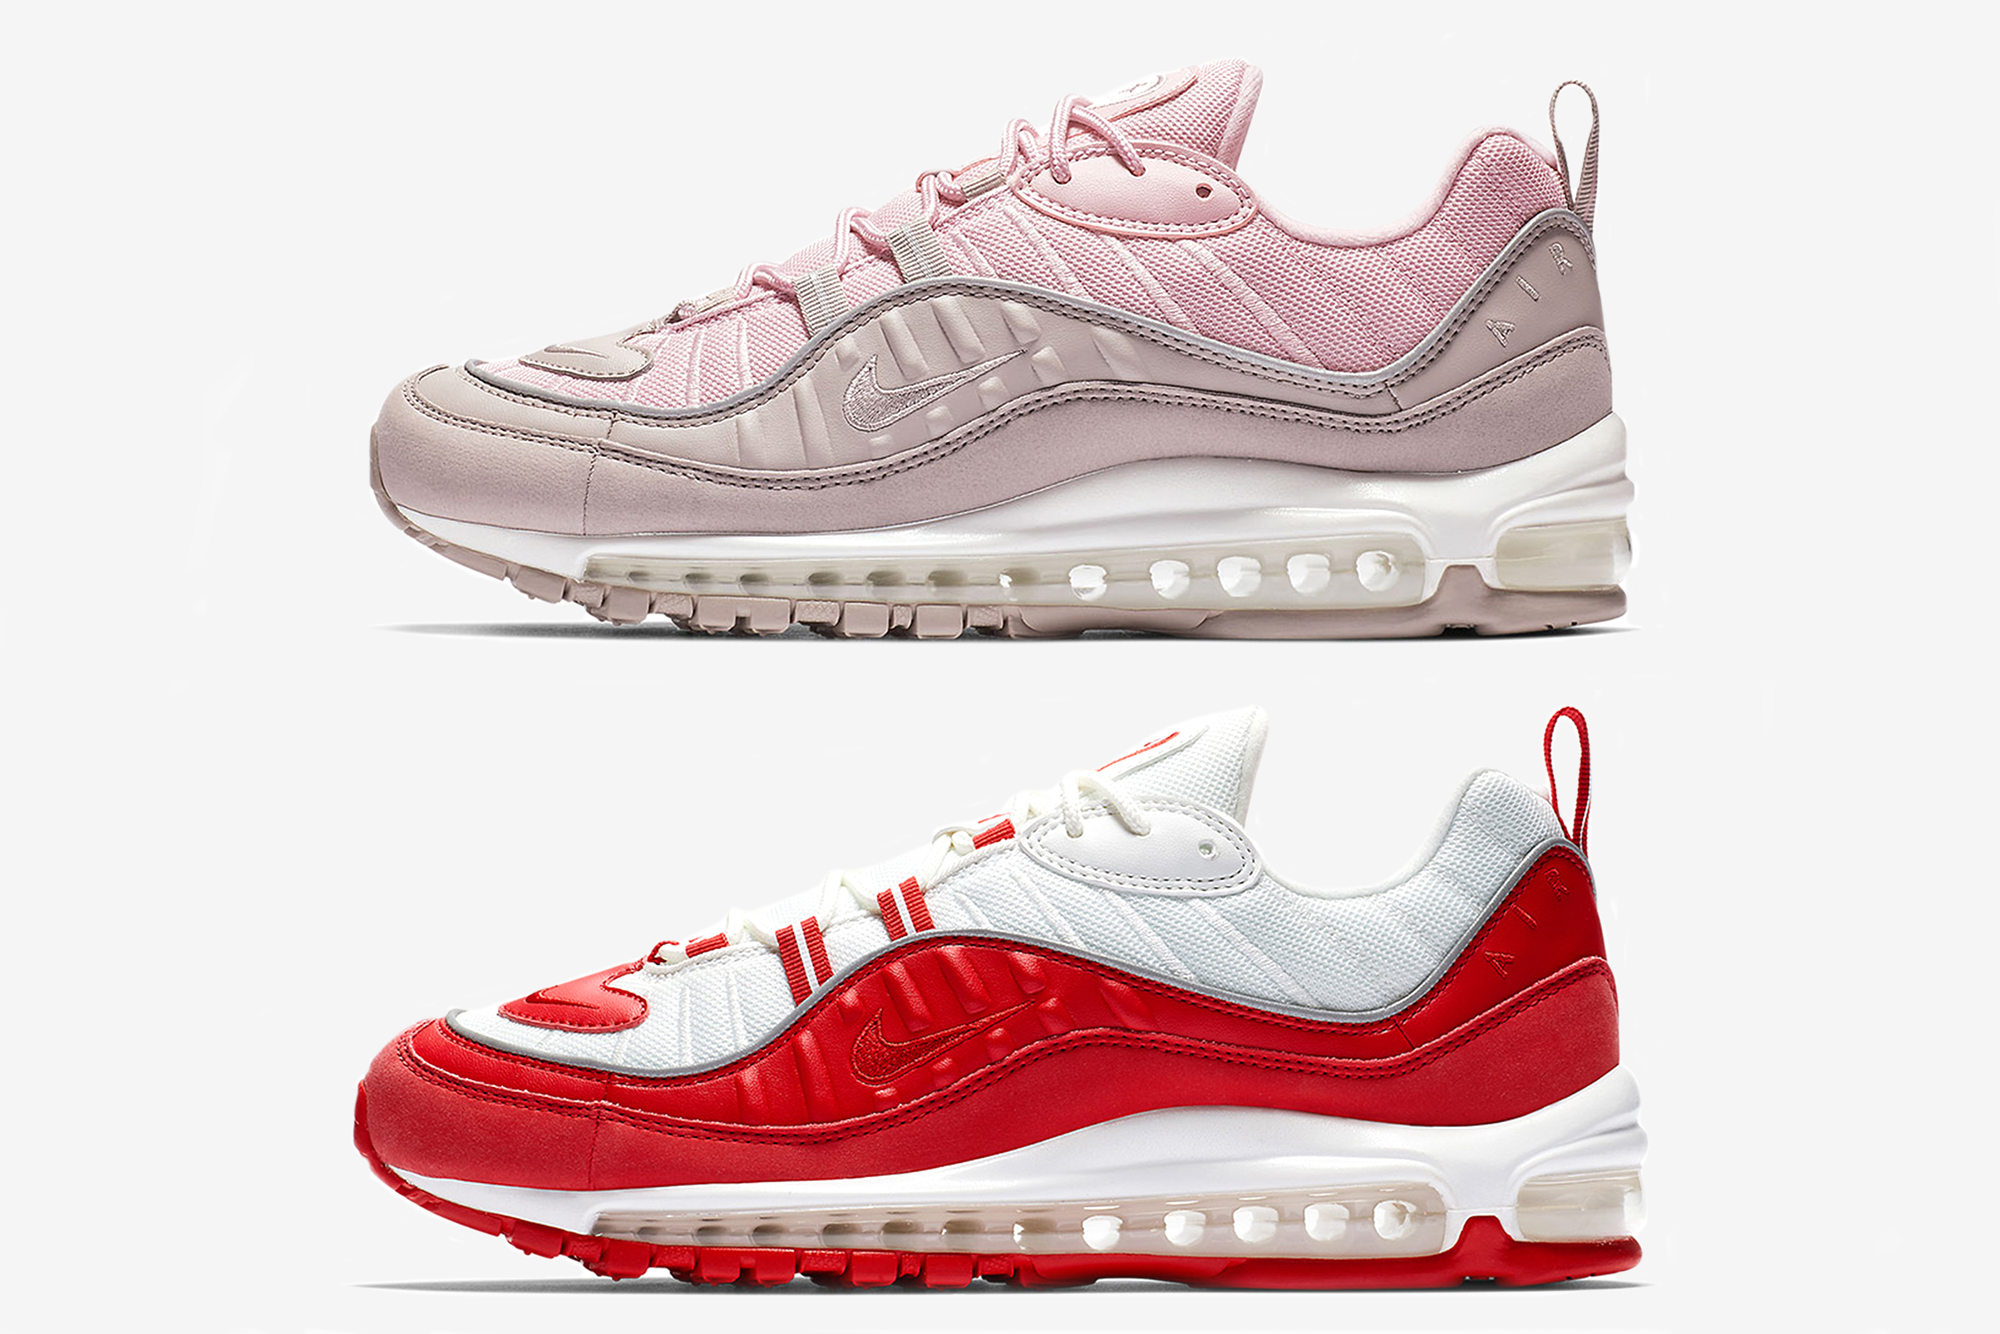 Nike Air Max 98 'University Red' & 'Pink Pumice'